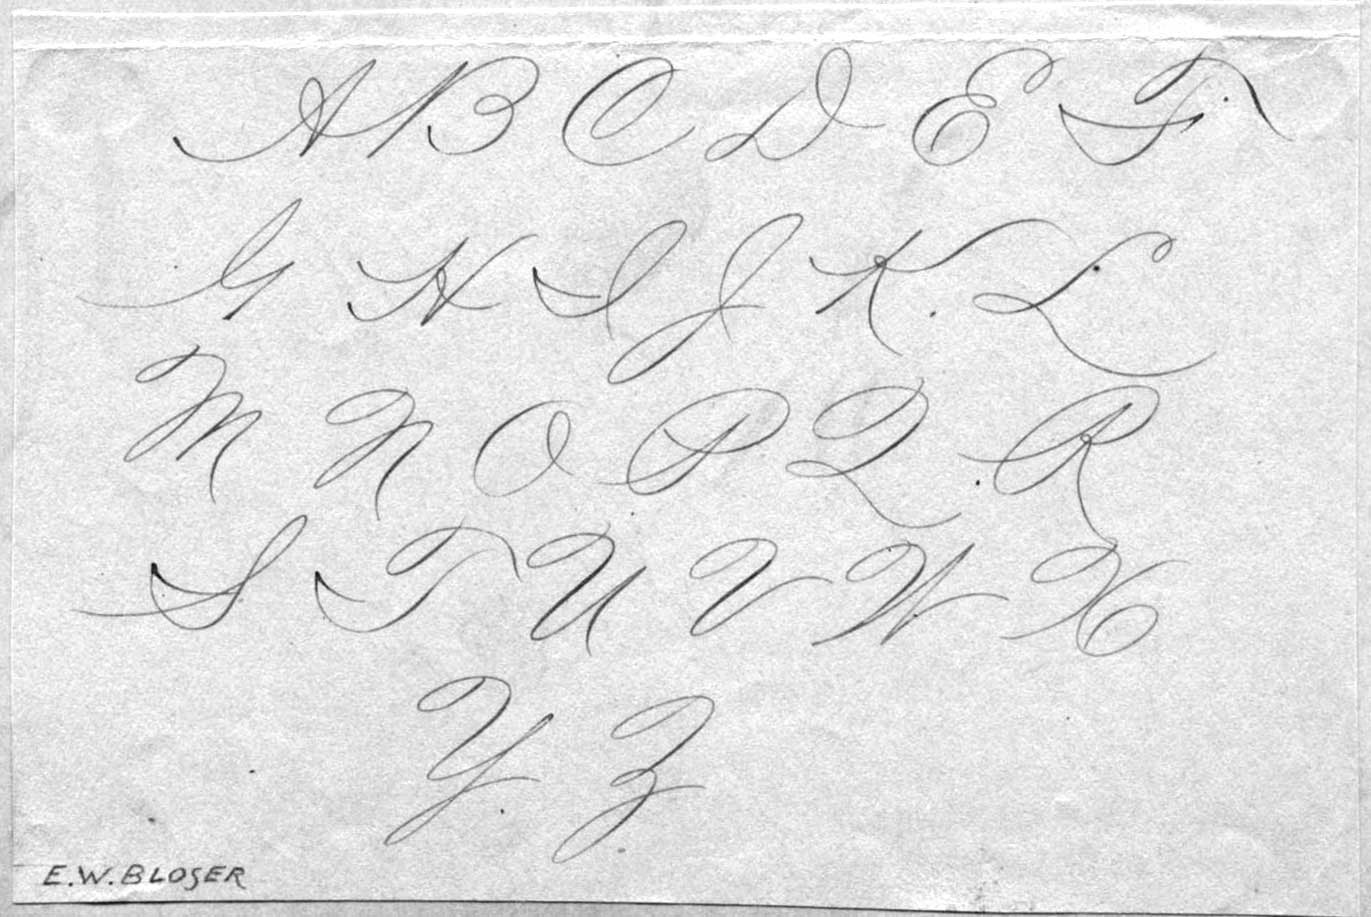 10 Best Images of Old-Style Cursive Writing Worksheets